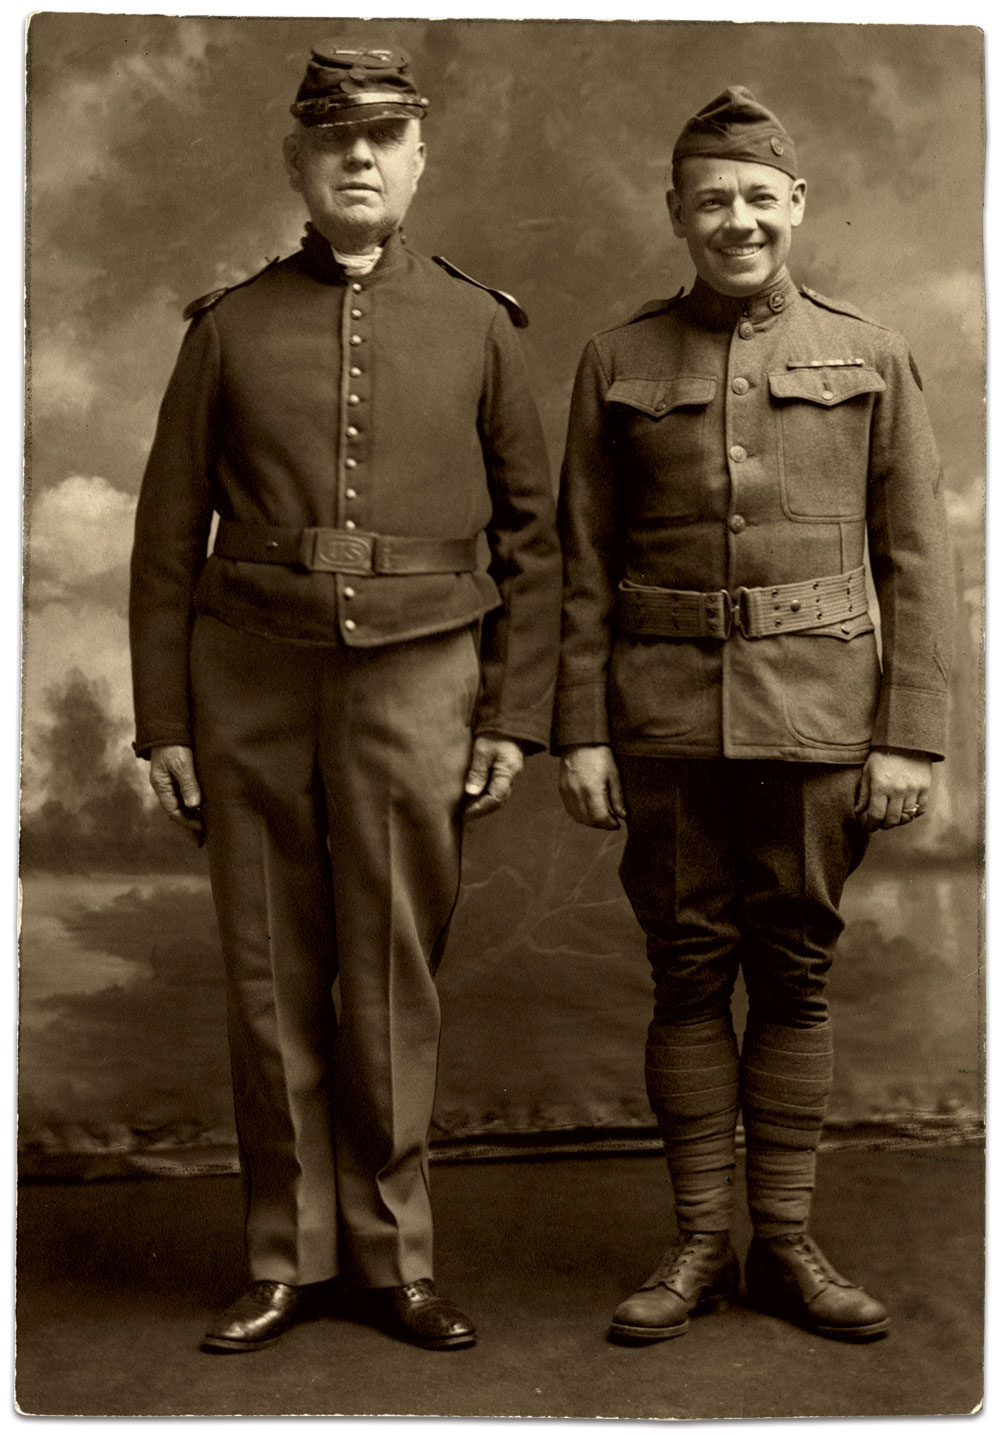 Father and son pose together in this World War I era image. Jeremiah Lockwood wears his original Civil War cap, as evidenced by tattered visor, and a hybrid uniform that is likely army surplus. His son Robert's uniform sleeve has overseas chevrons, which suggests this portrait was taken after his return from Europe in 1919. Real photo postcard by an anonymous photographer.